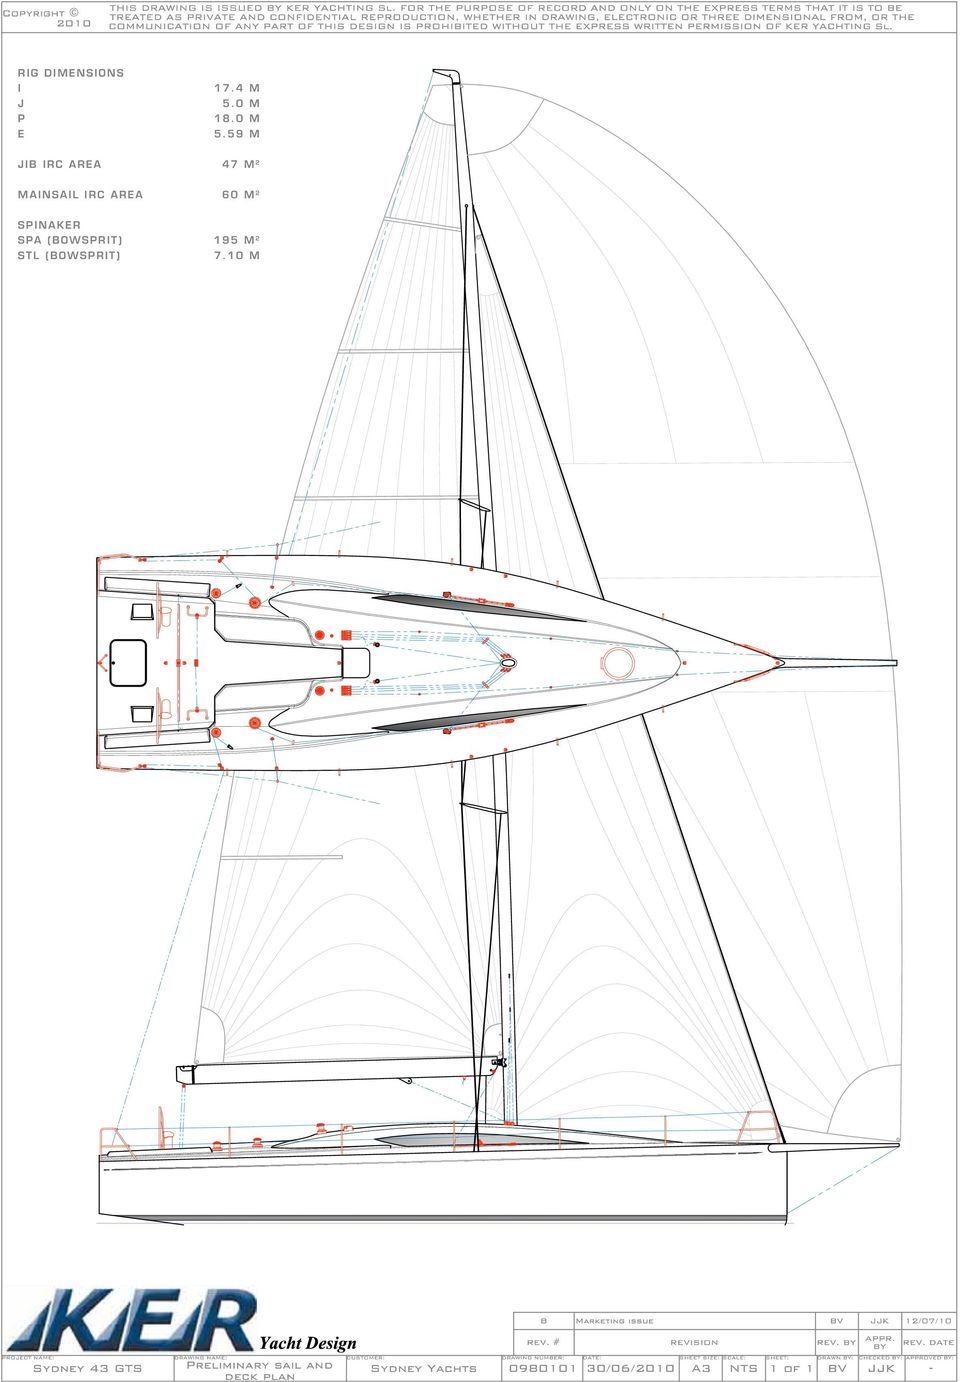 59 M JIB IRC AREA 47 M 2 MAINSAIL